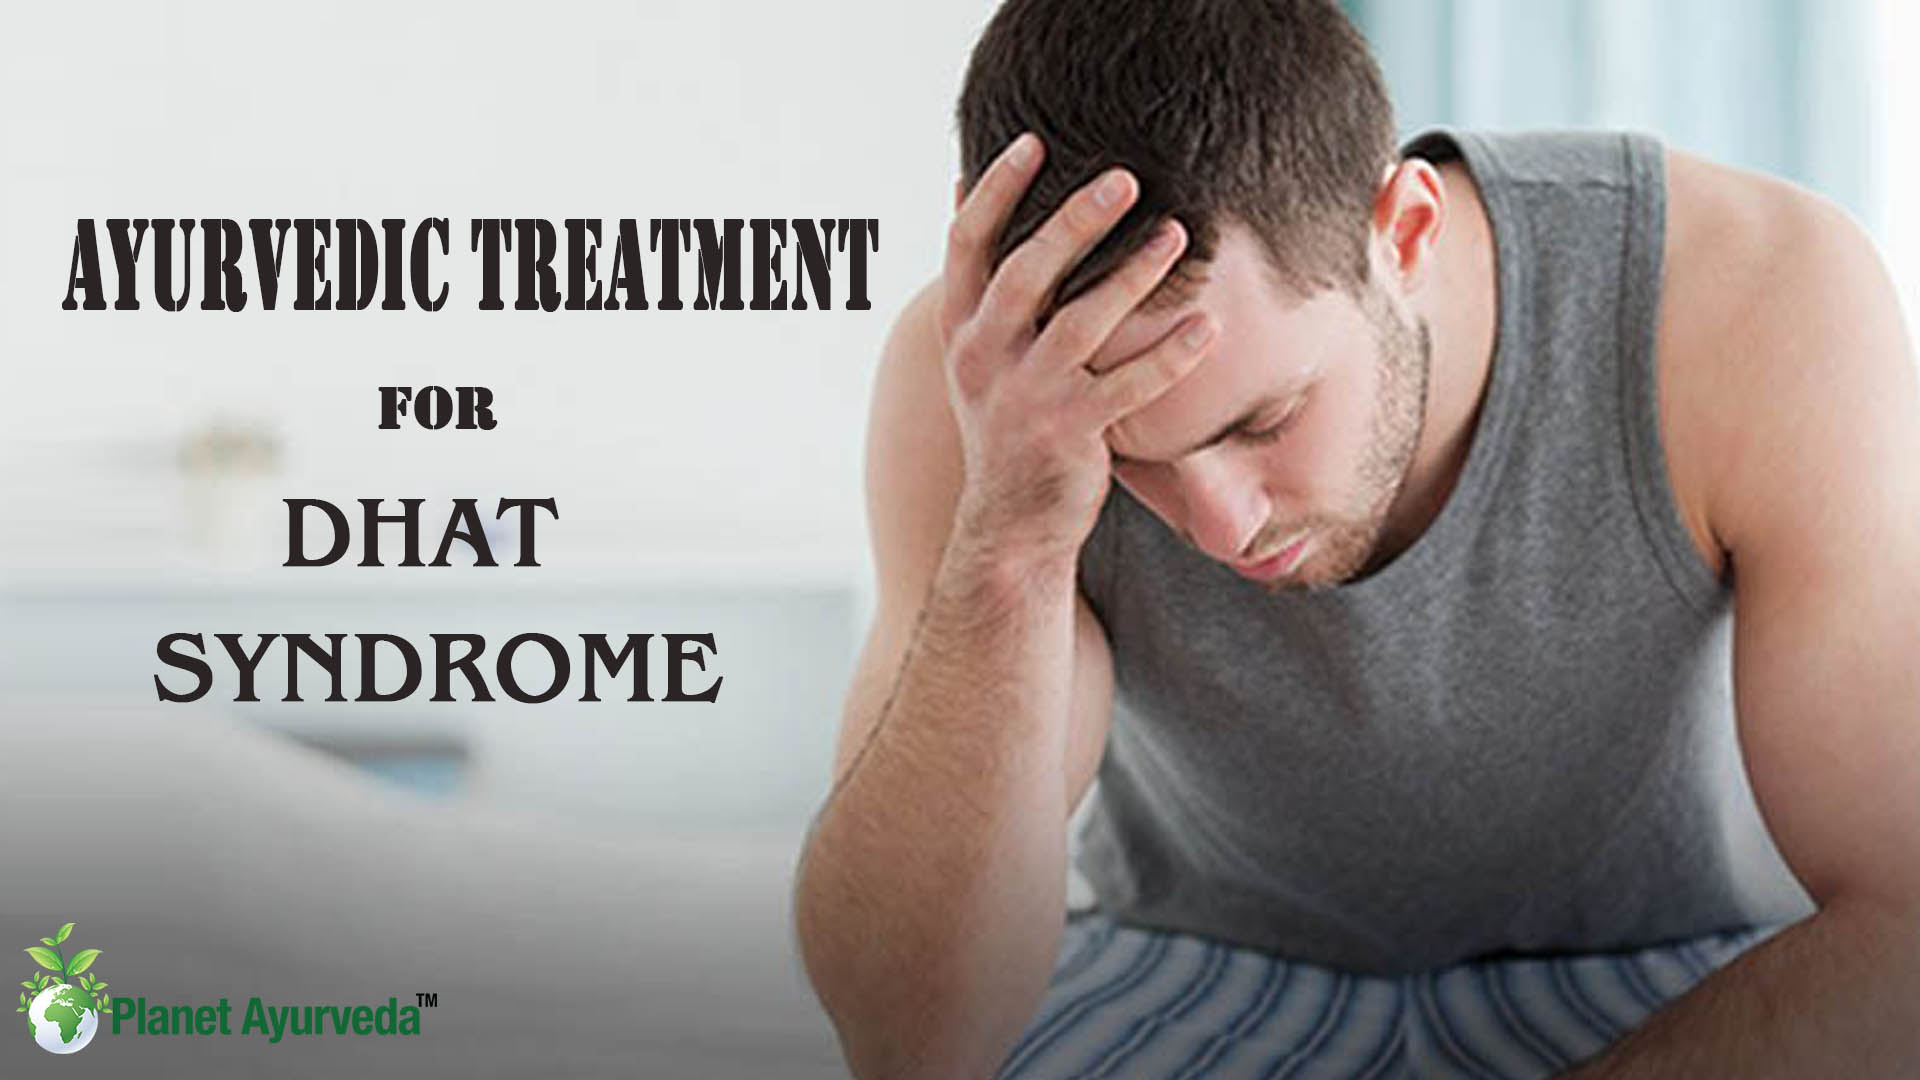 Herbal Remedies for Dhat Syndrome - Symptoms & Ayurvedic Treatment